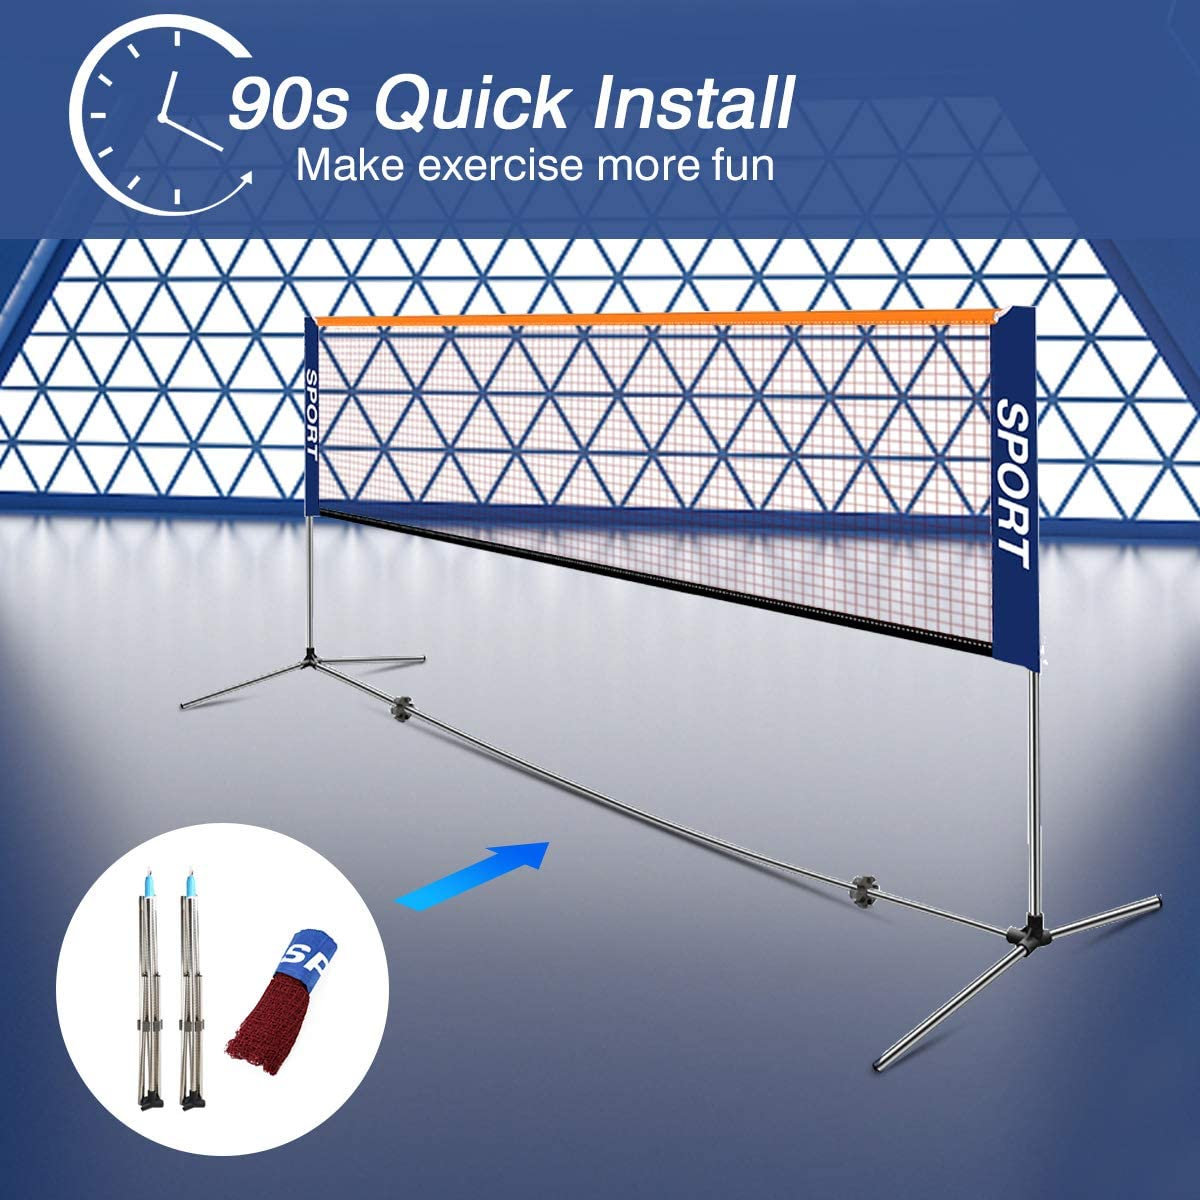 Ulalov Upgrade 17ft Badminton Net Set with Stainless Steel Poles, Portable Adjustable Height Badminton Volleyball Tennis Pickleball Net Set for Backyard Beach Driveway Outdoor Indoor Use : Sports & Outdoors